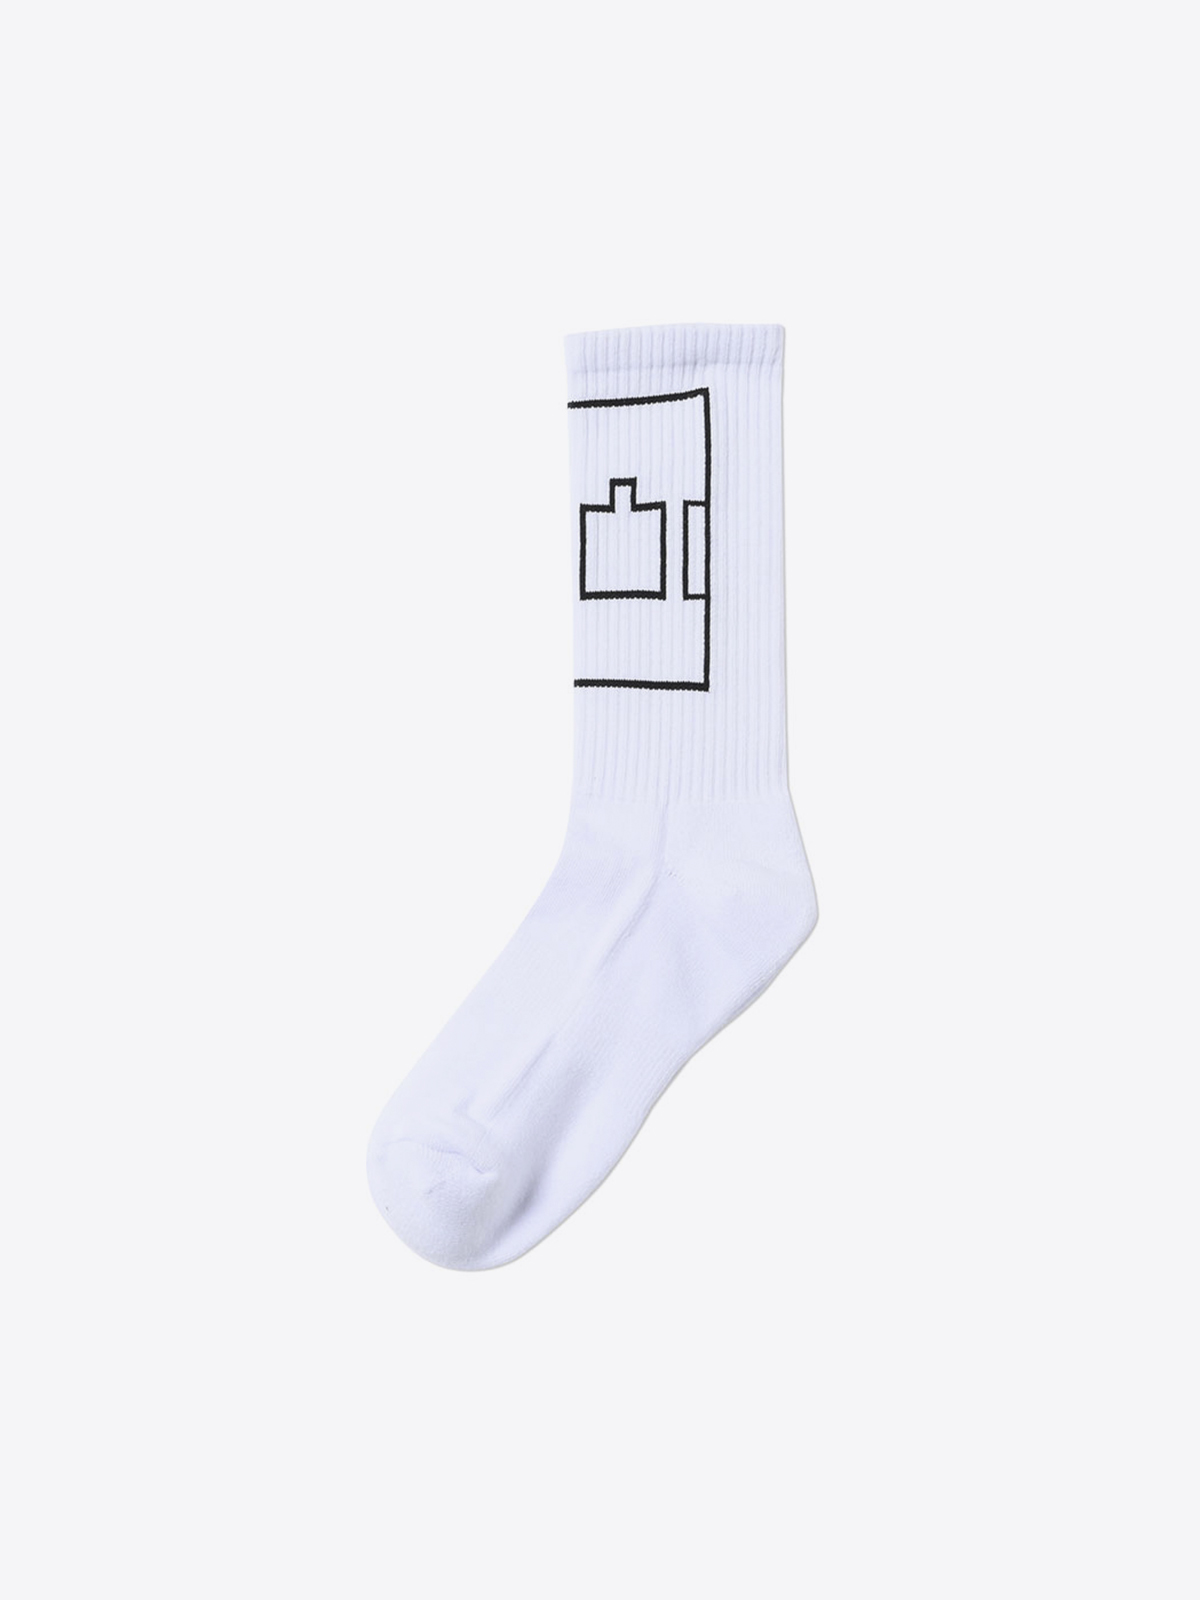 the trilogy tapes TTT SOCKS